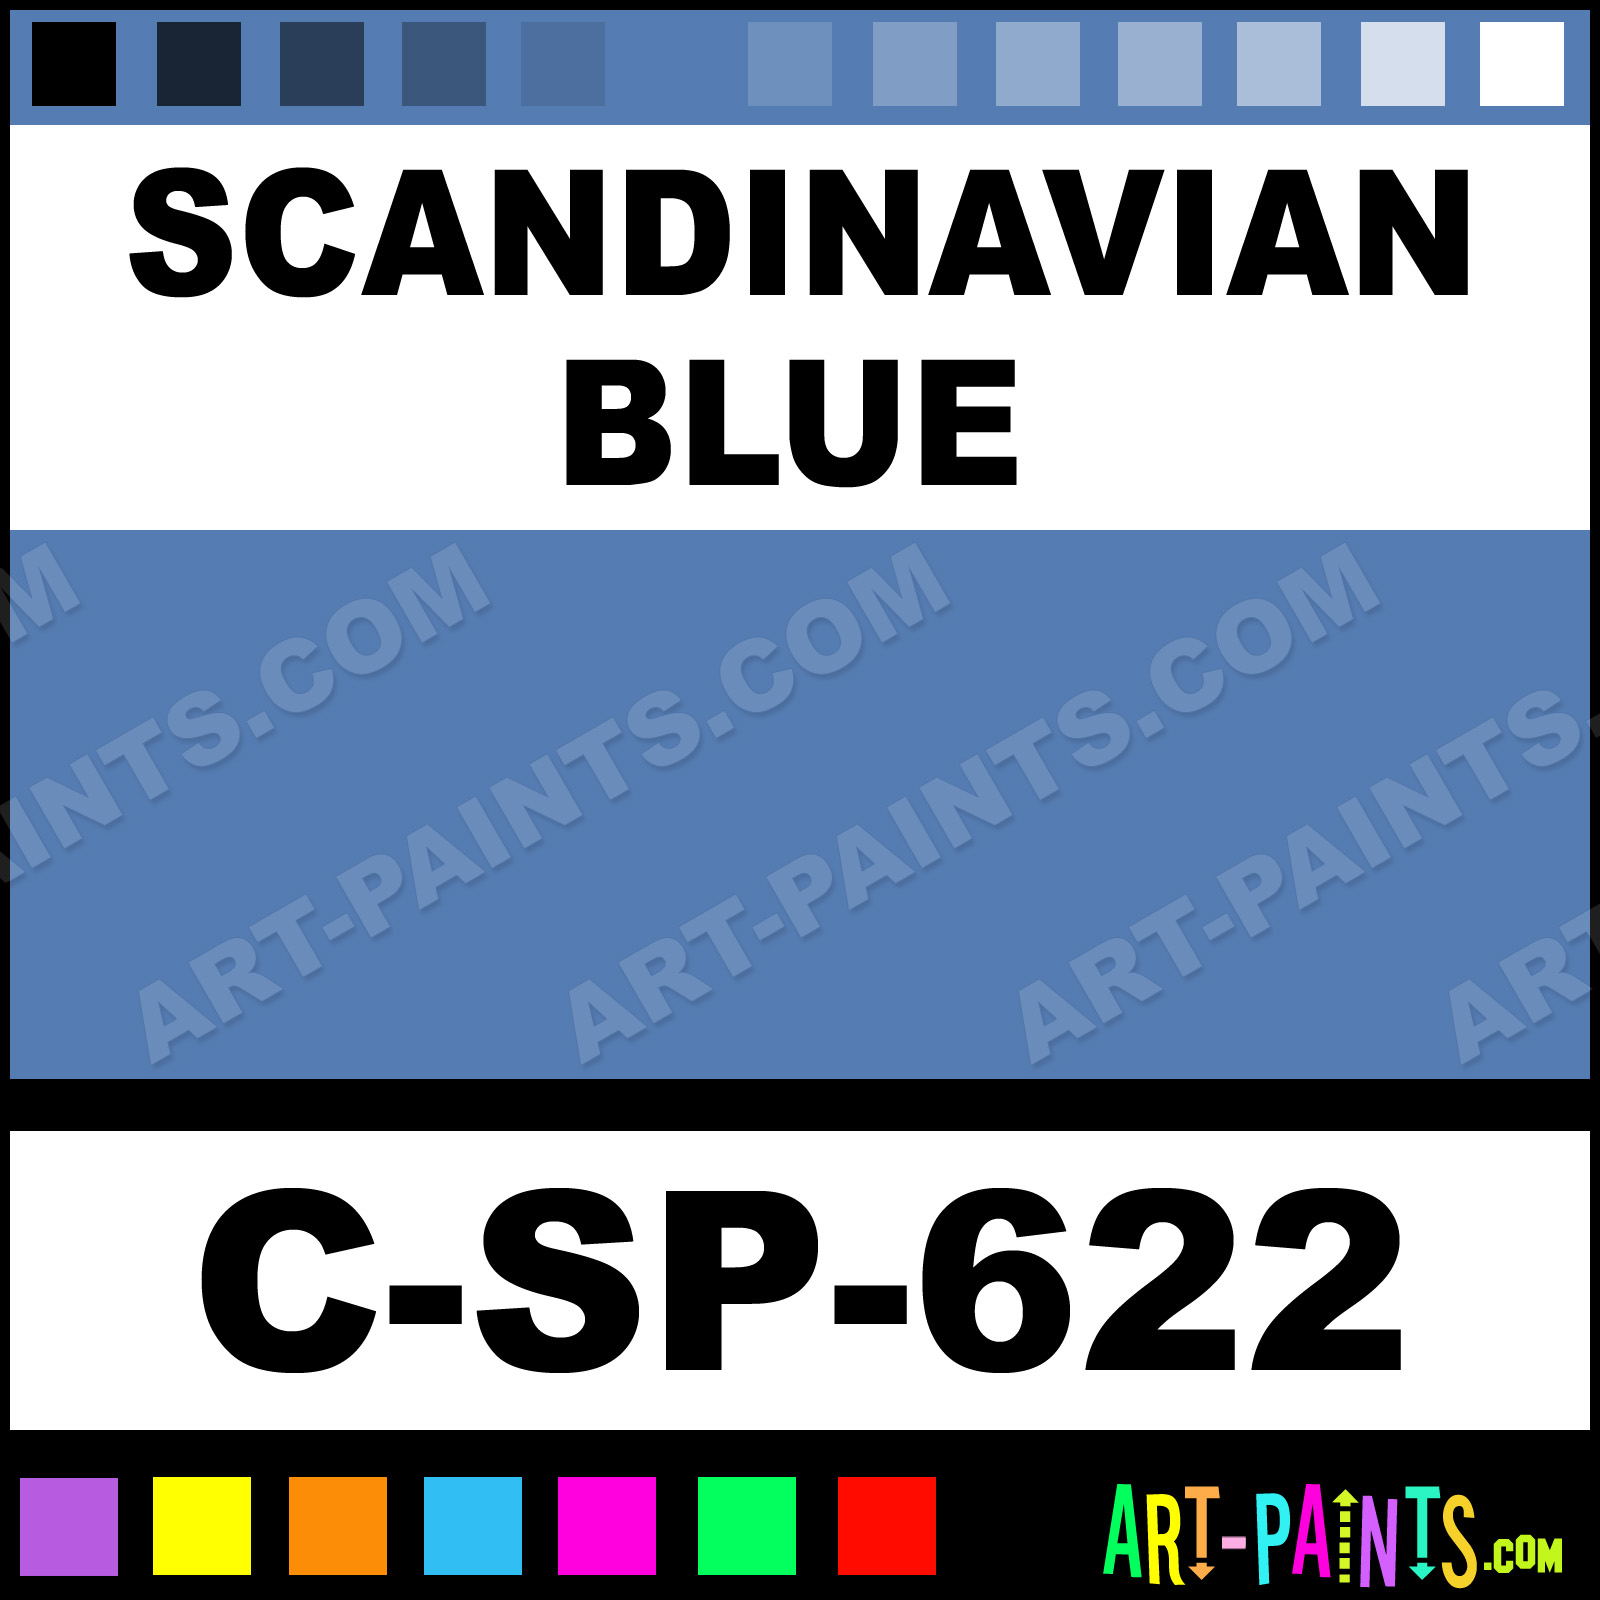 Scandinavian Blue 600 Series Underglaze Ceramic Paints C